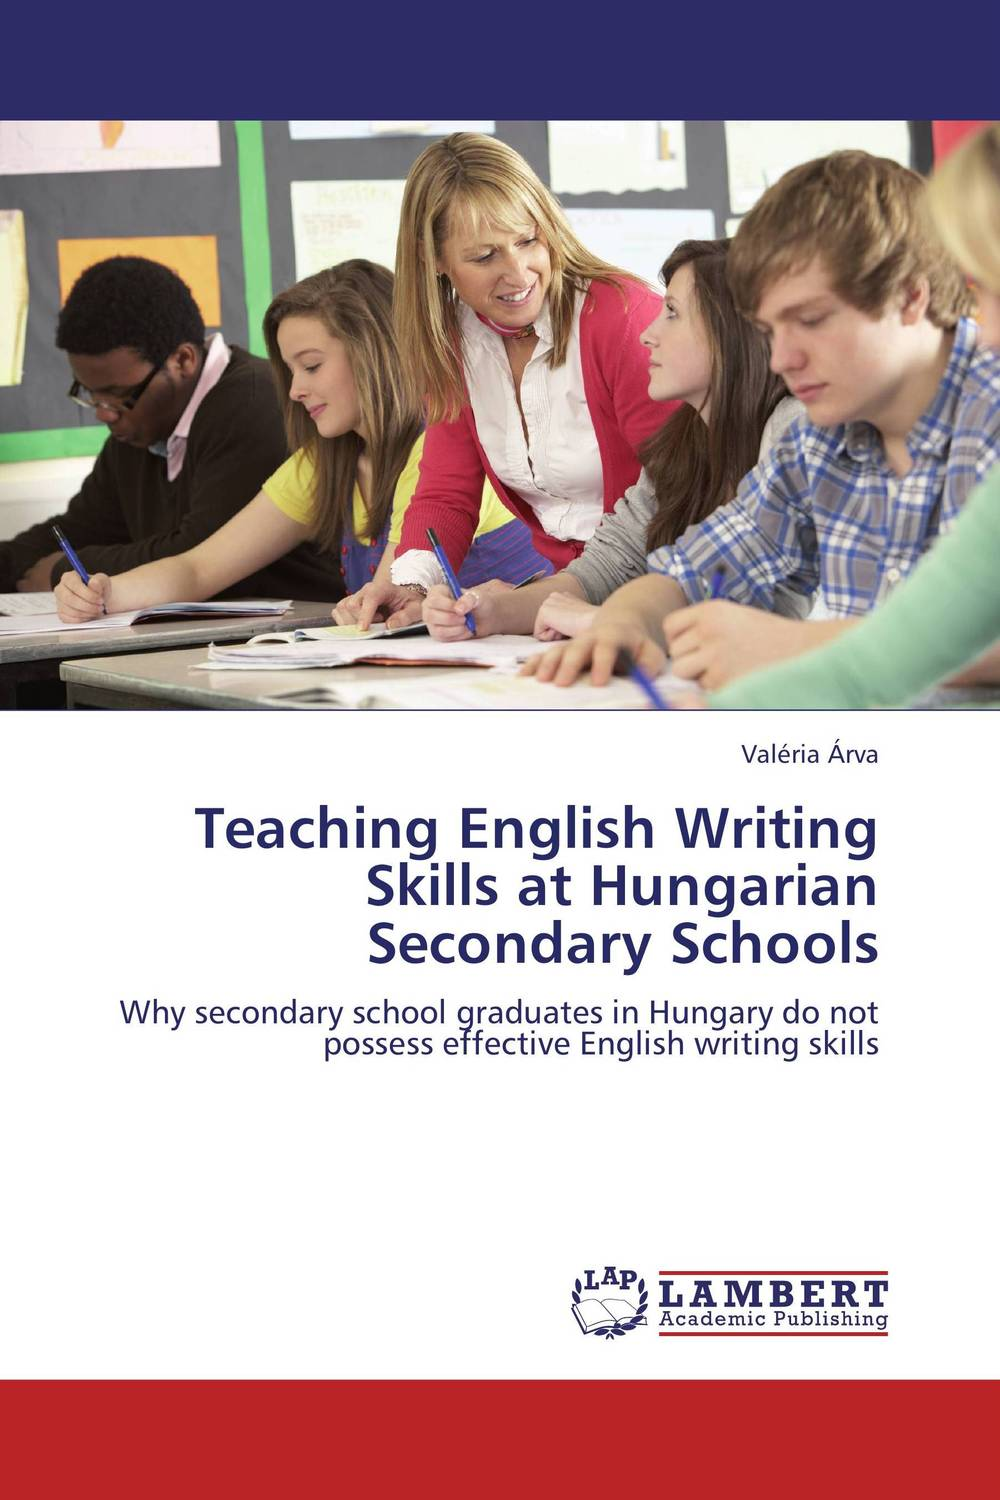 Teaching English Writing Skills at Hungarian Secondary Schools